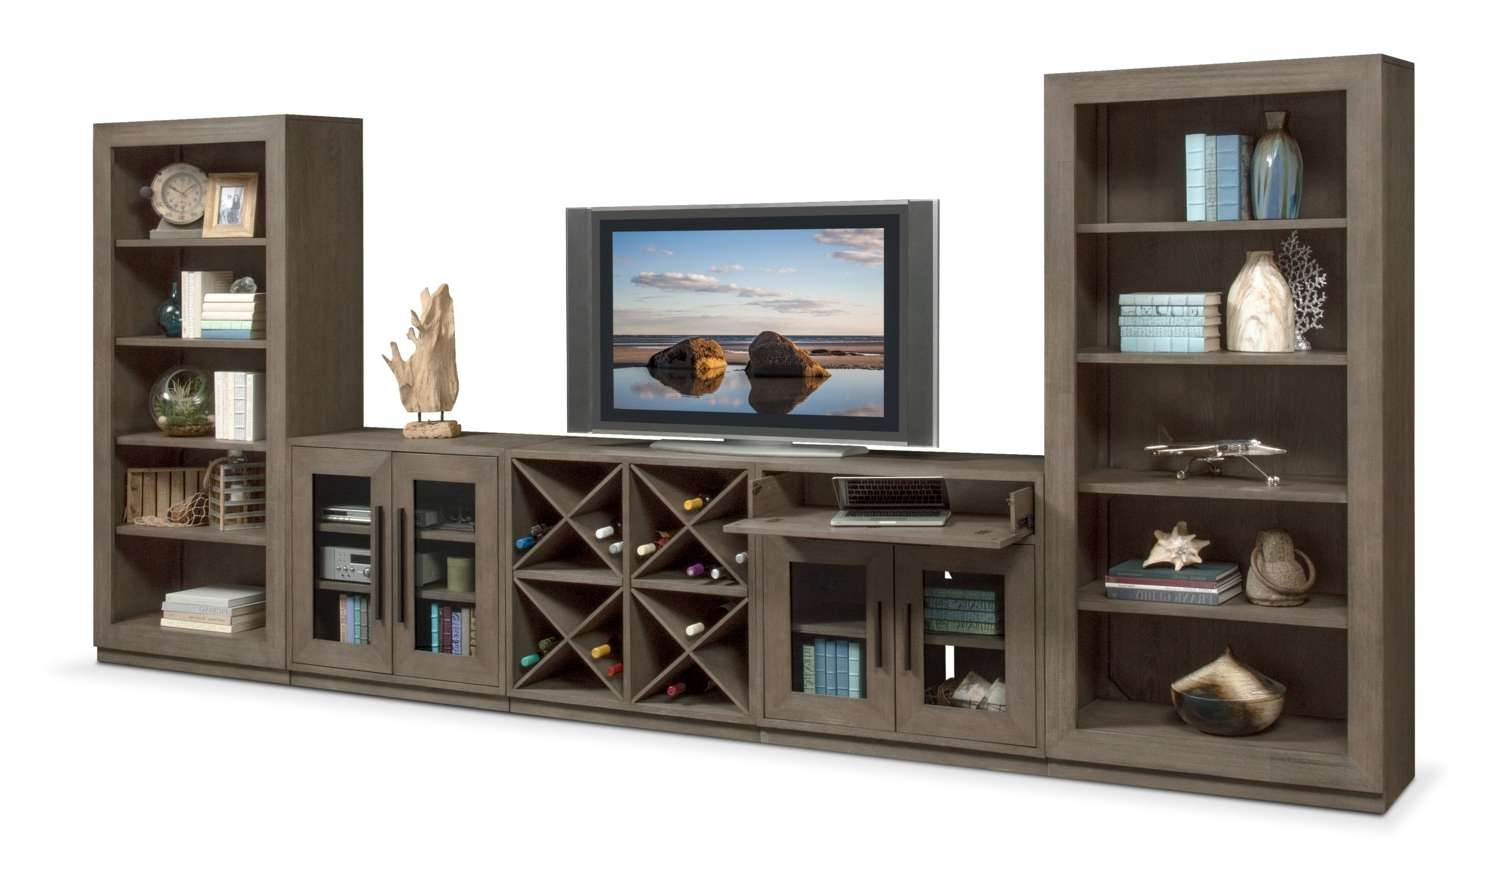 T V Stands & Media Centers | Value City Furniture And Mattresses Pertaining To Glass Fronted Tv Cabinets (View 18 of 20)